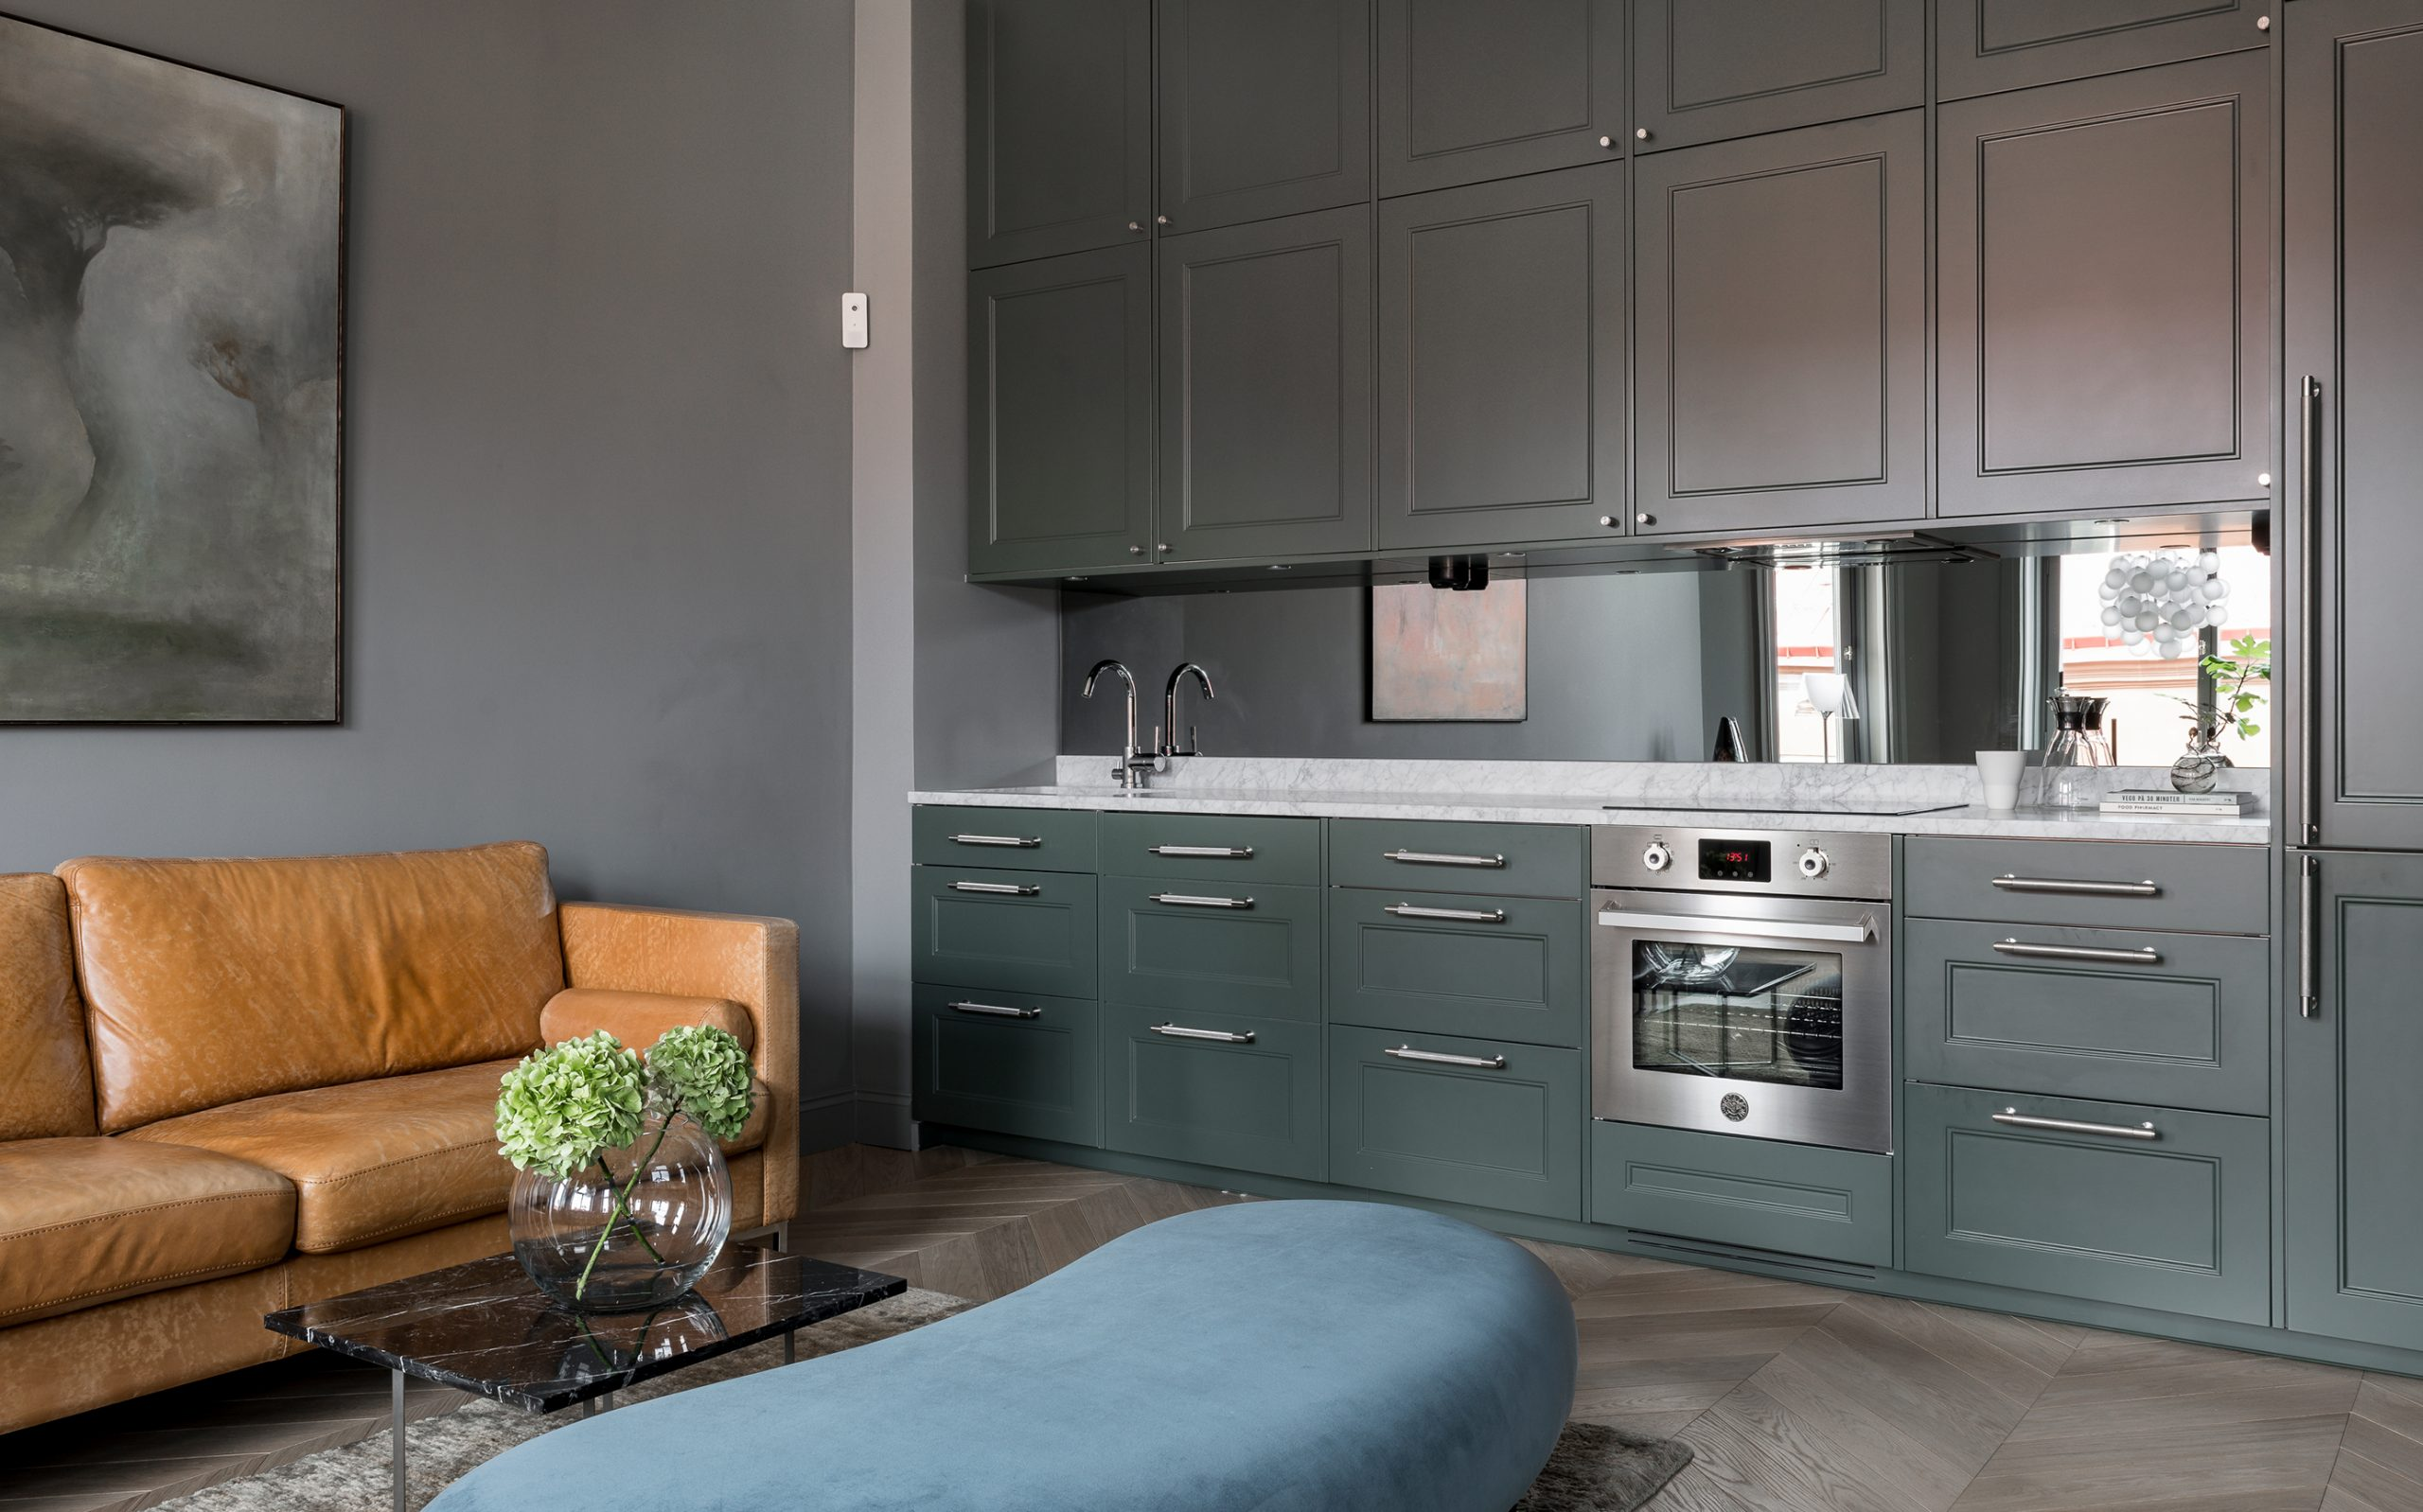 Green kitchen with Buster + Punch Steel hardware